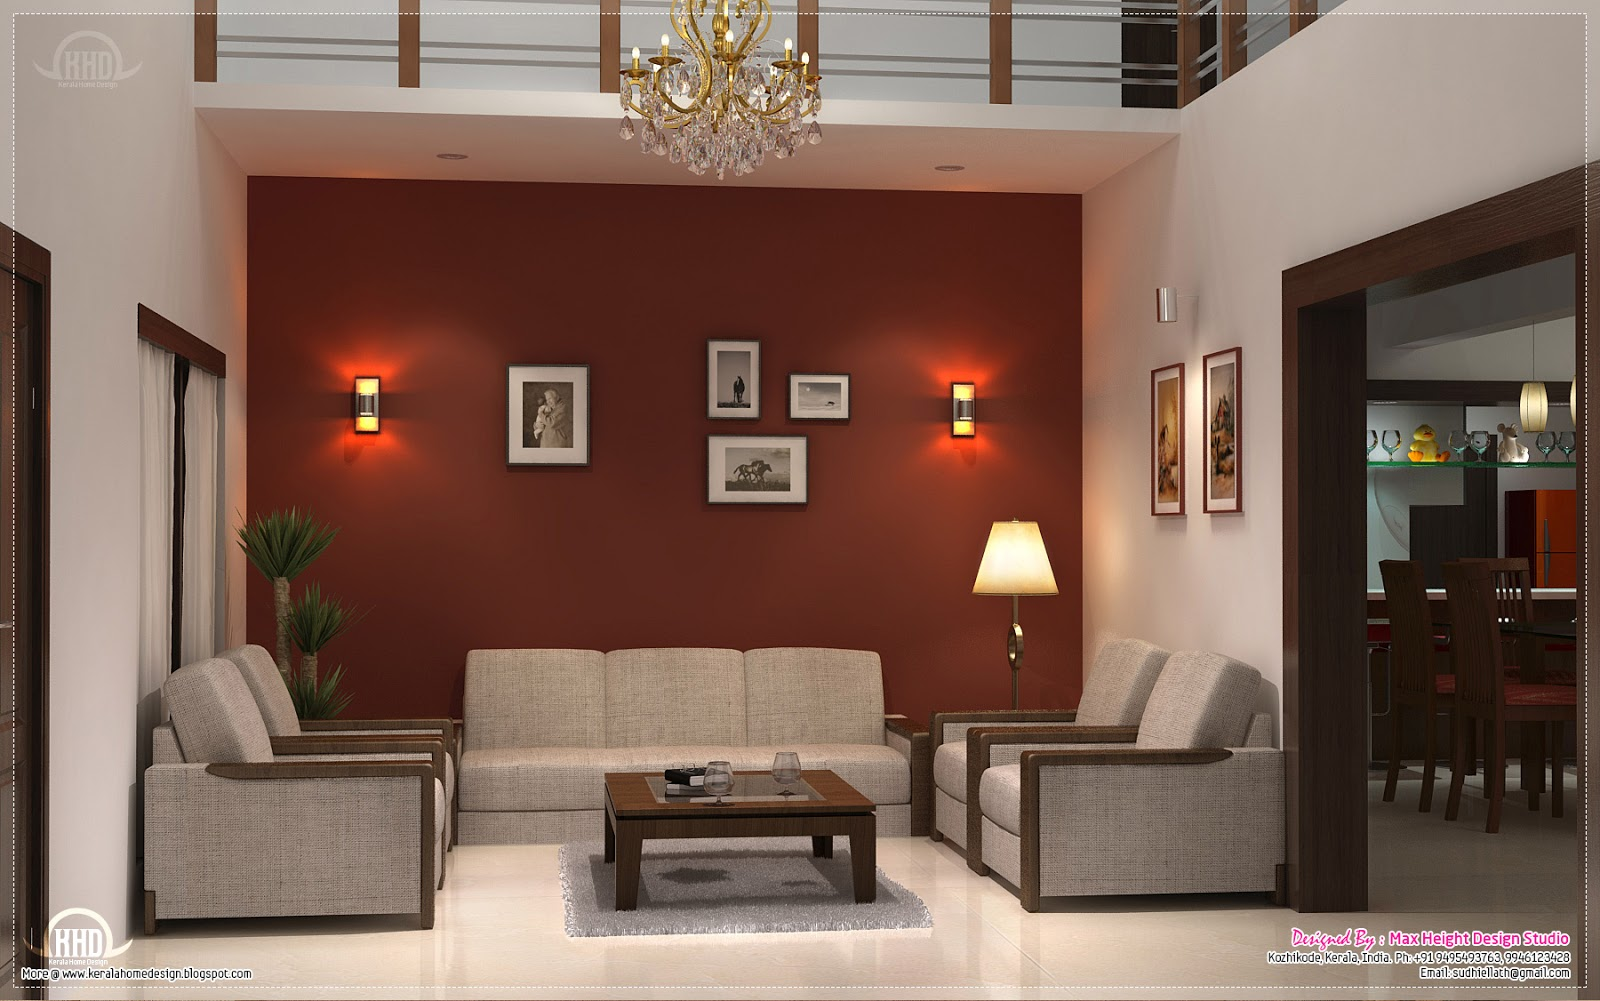 Home interior design ideas - Kerala home design and floor plans